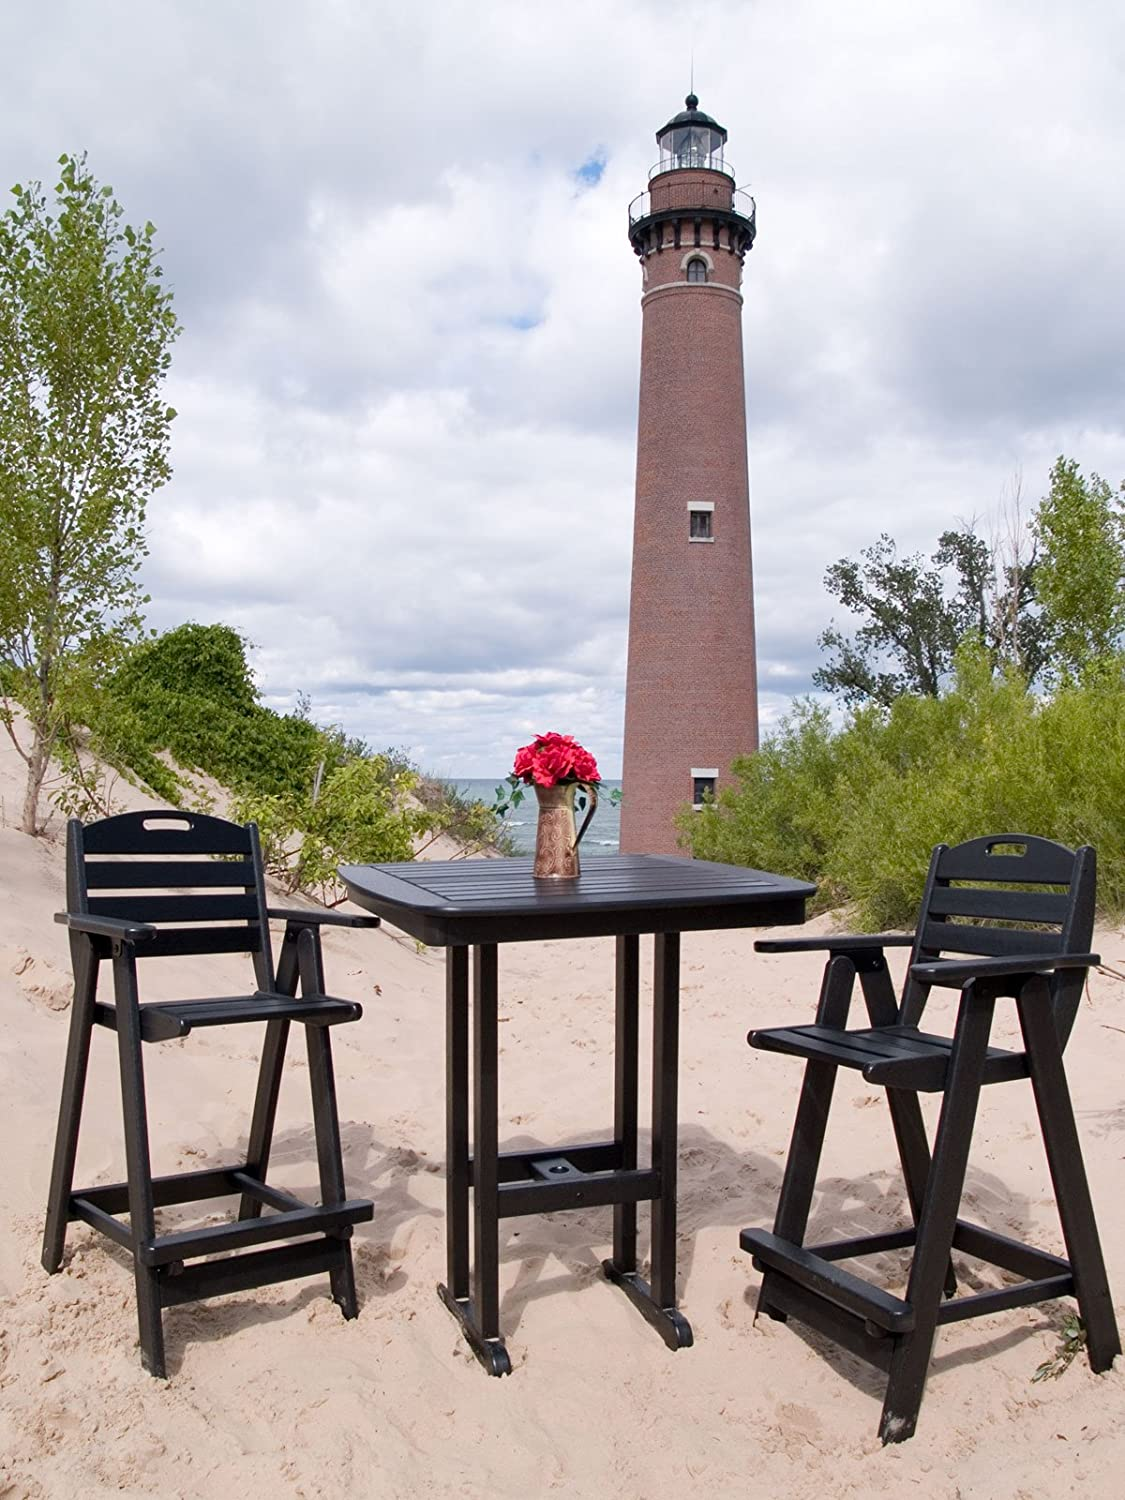 Amazon.com : POLYWOOD NCB46BL Nautical Bar Chair, Black : Patio Dining  Chairs : Garden U0026 Outdoor